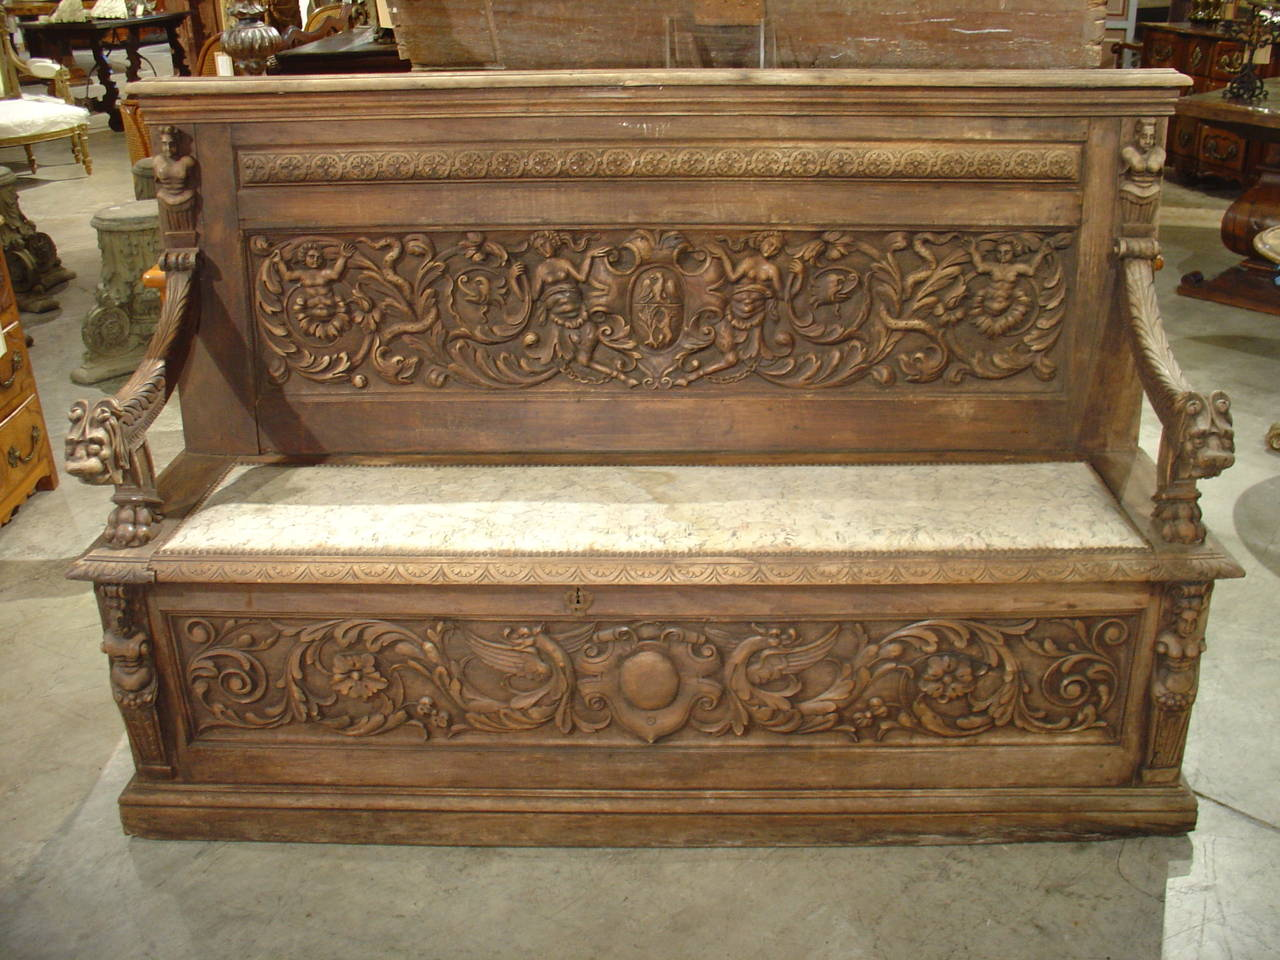 Sensational 19Th Century Renaissance Style Carved French Storage Bench Creativecarmelina Interior Chair Design Creativecarmelinacom